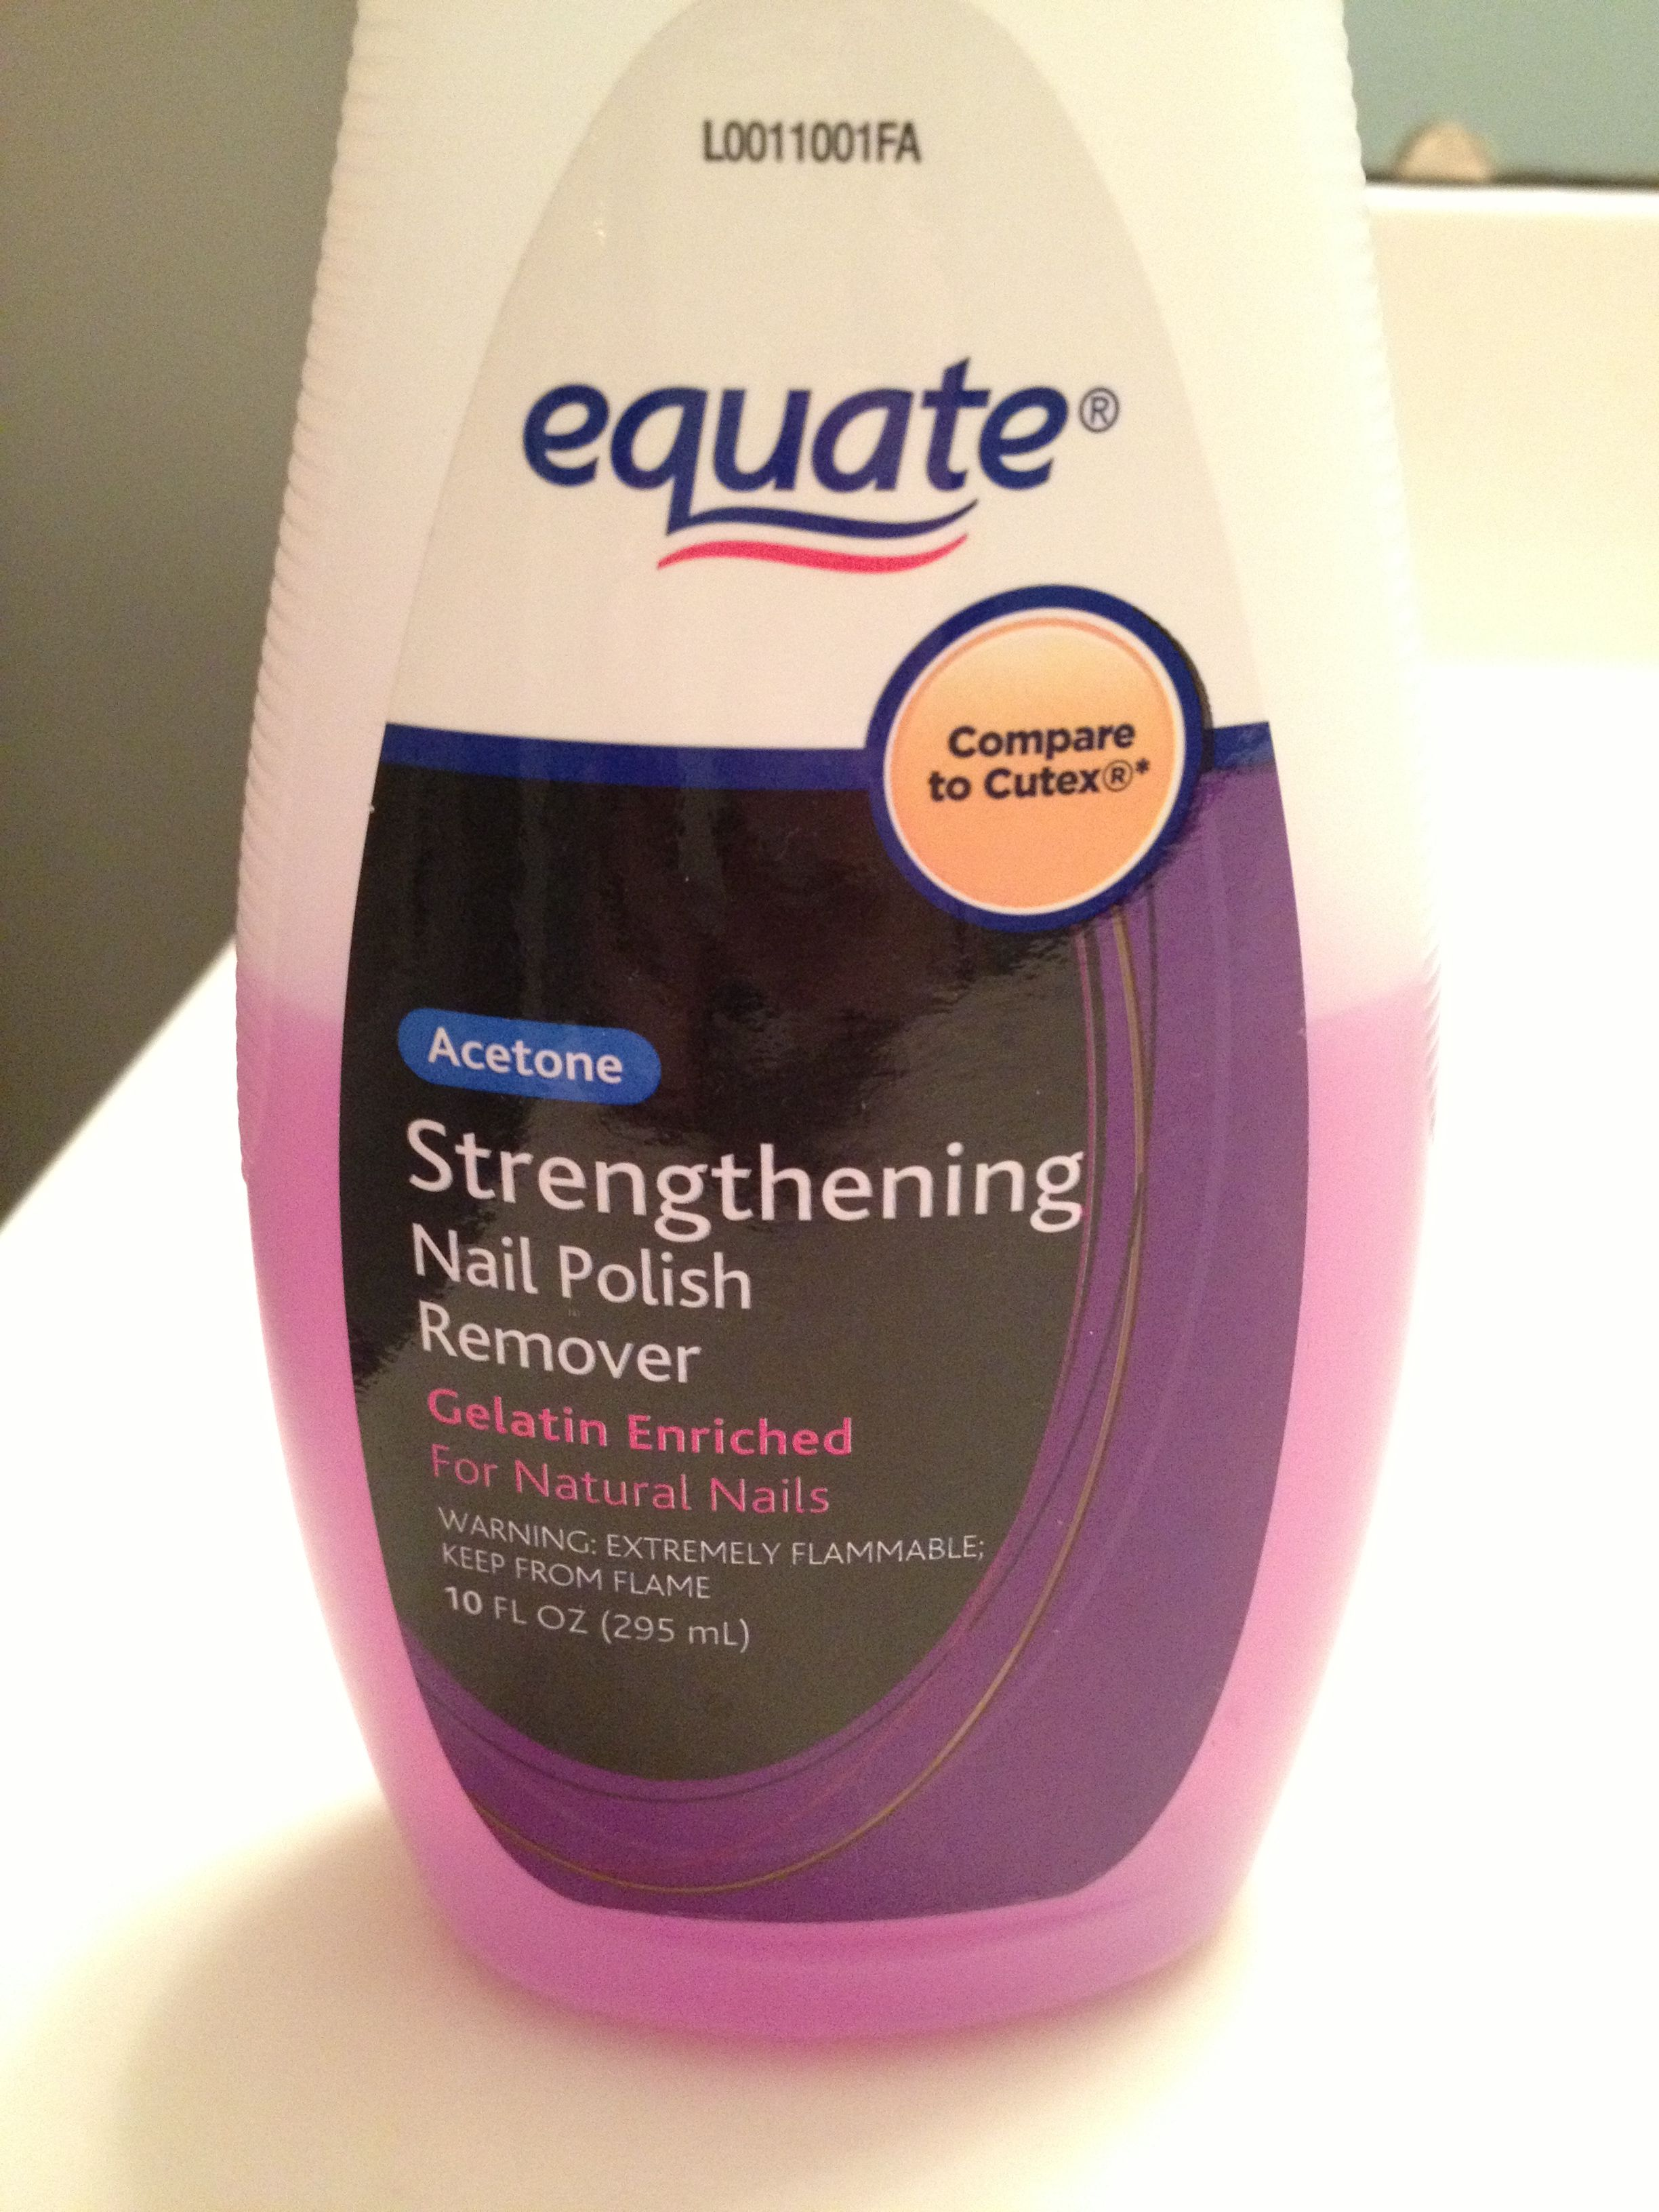 Hair Dye Stains On Your Counter Or Tub Easy Fix Just Use Nail Polish Would Show You Before And After But I Did Hair Dye Removal Dyed Hair Nail Polish Remover